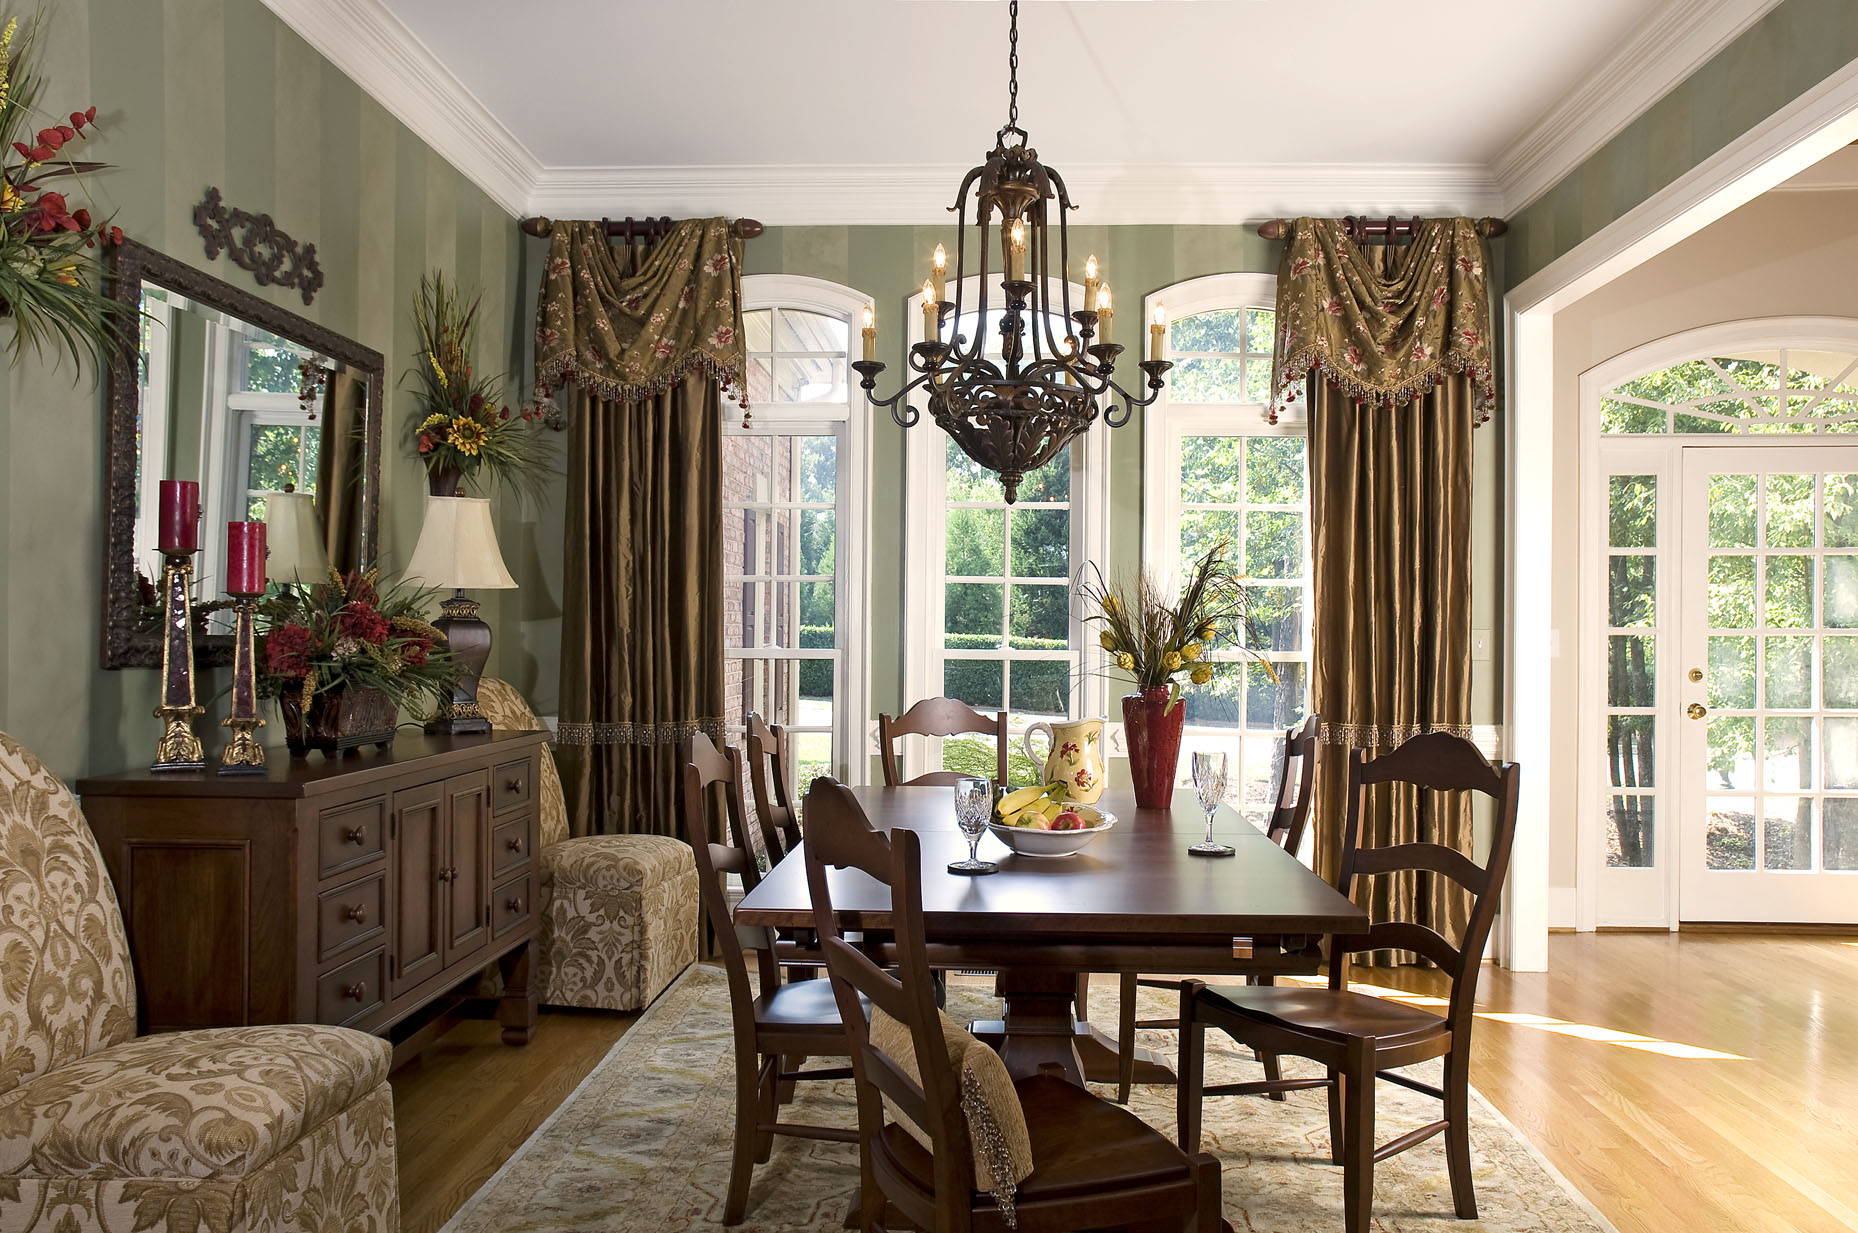 Window Treatments with Drama and Panache! | Decorating Den ... on Dining Room Curtain Ideas  id=49415